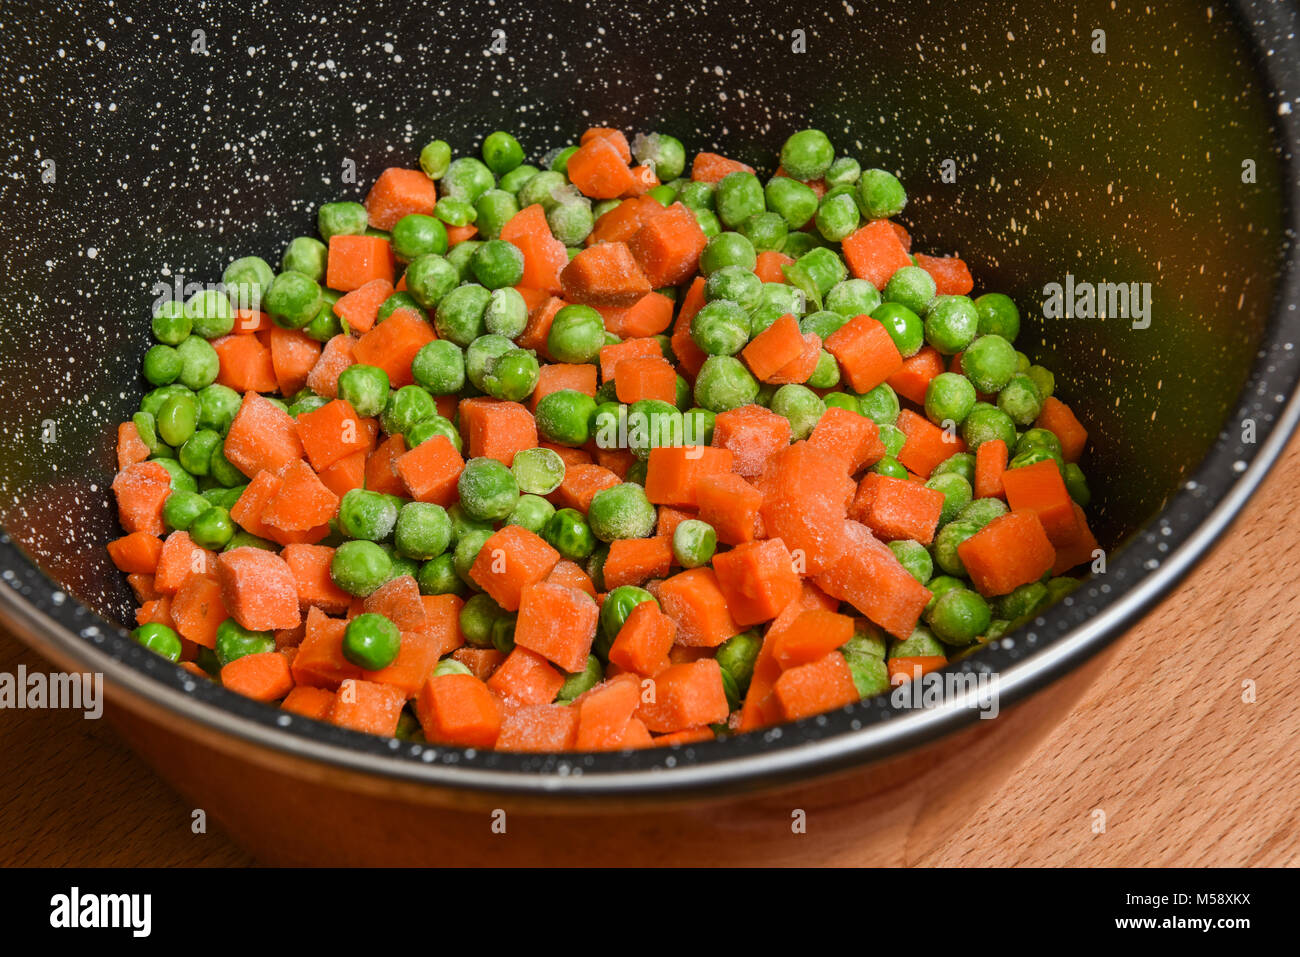 frozen peas and carrots Stock Photo